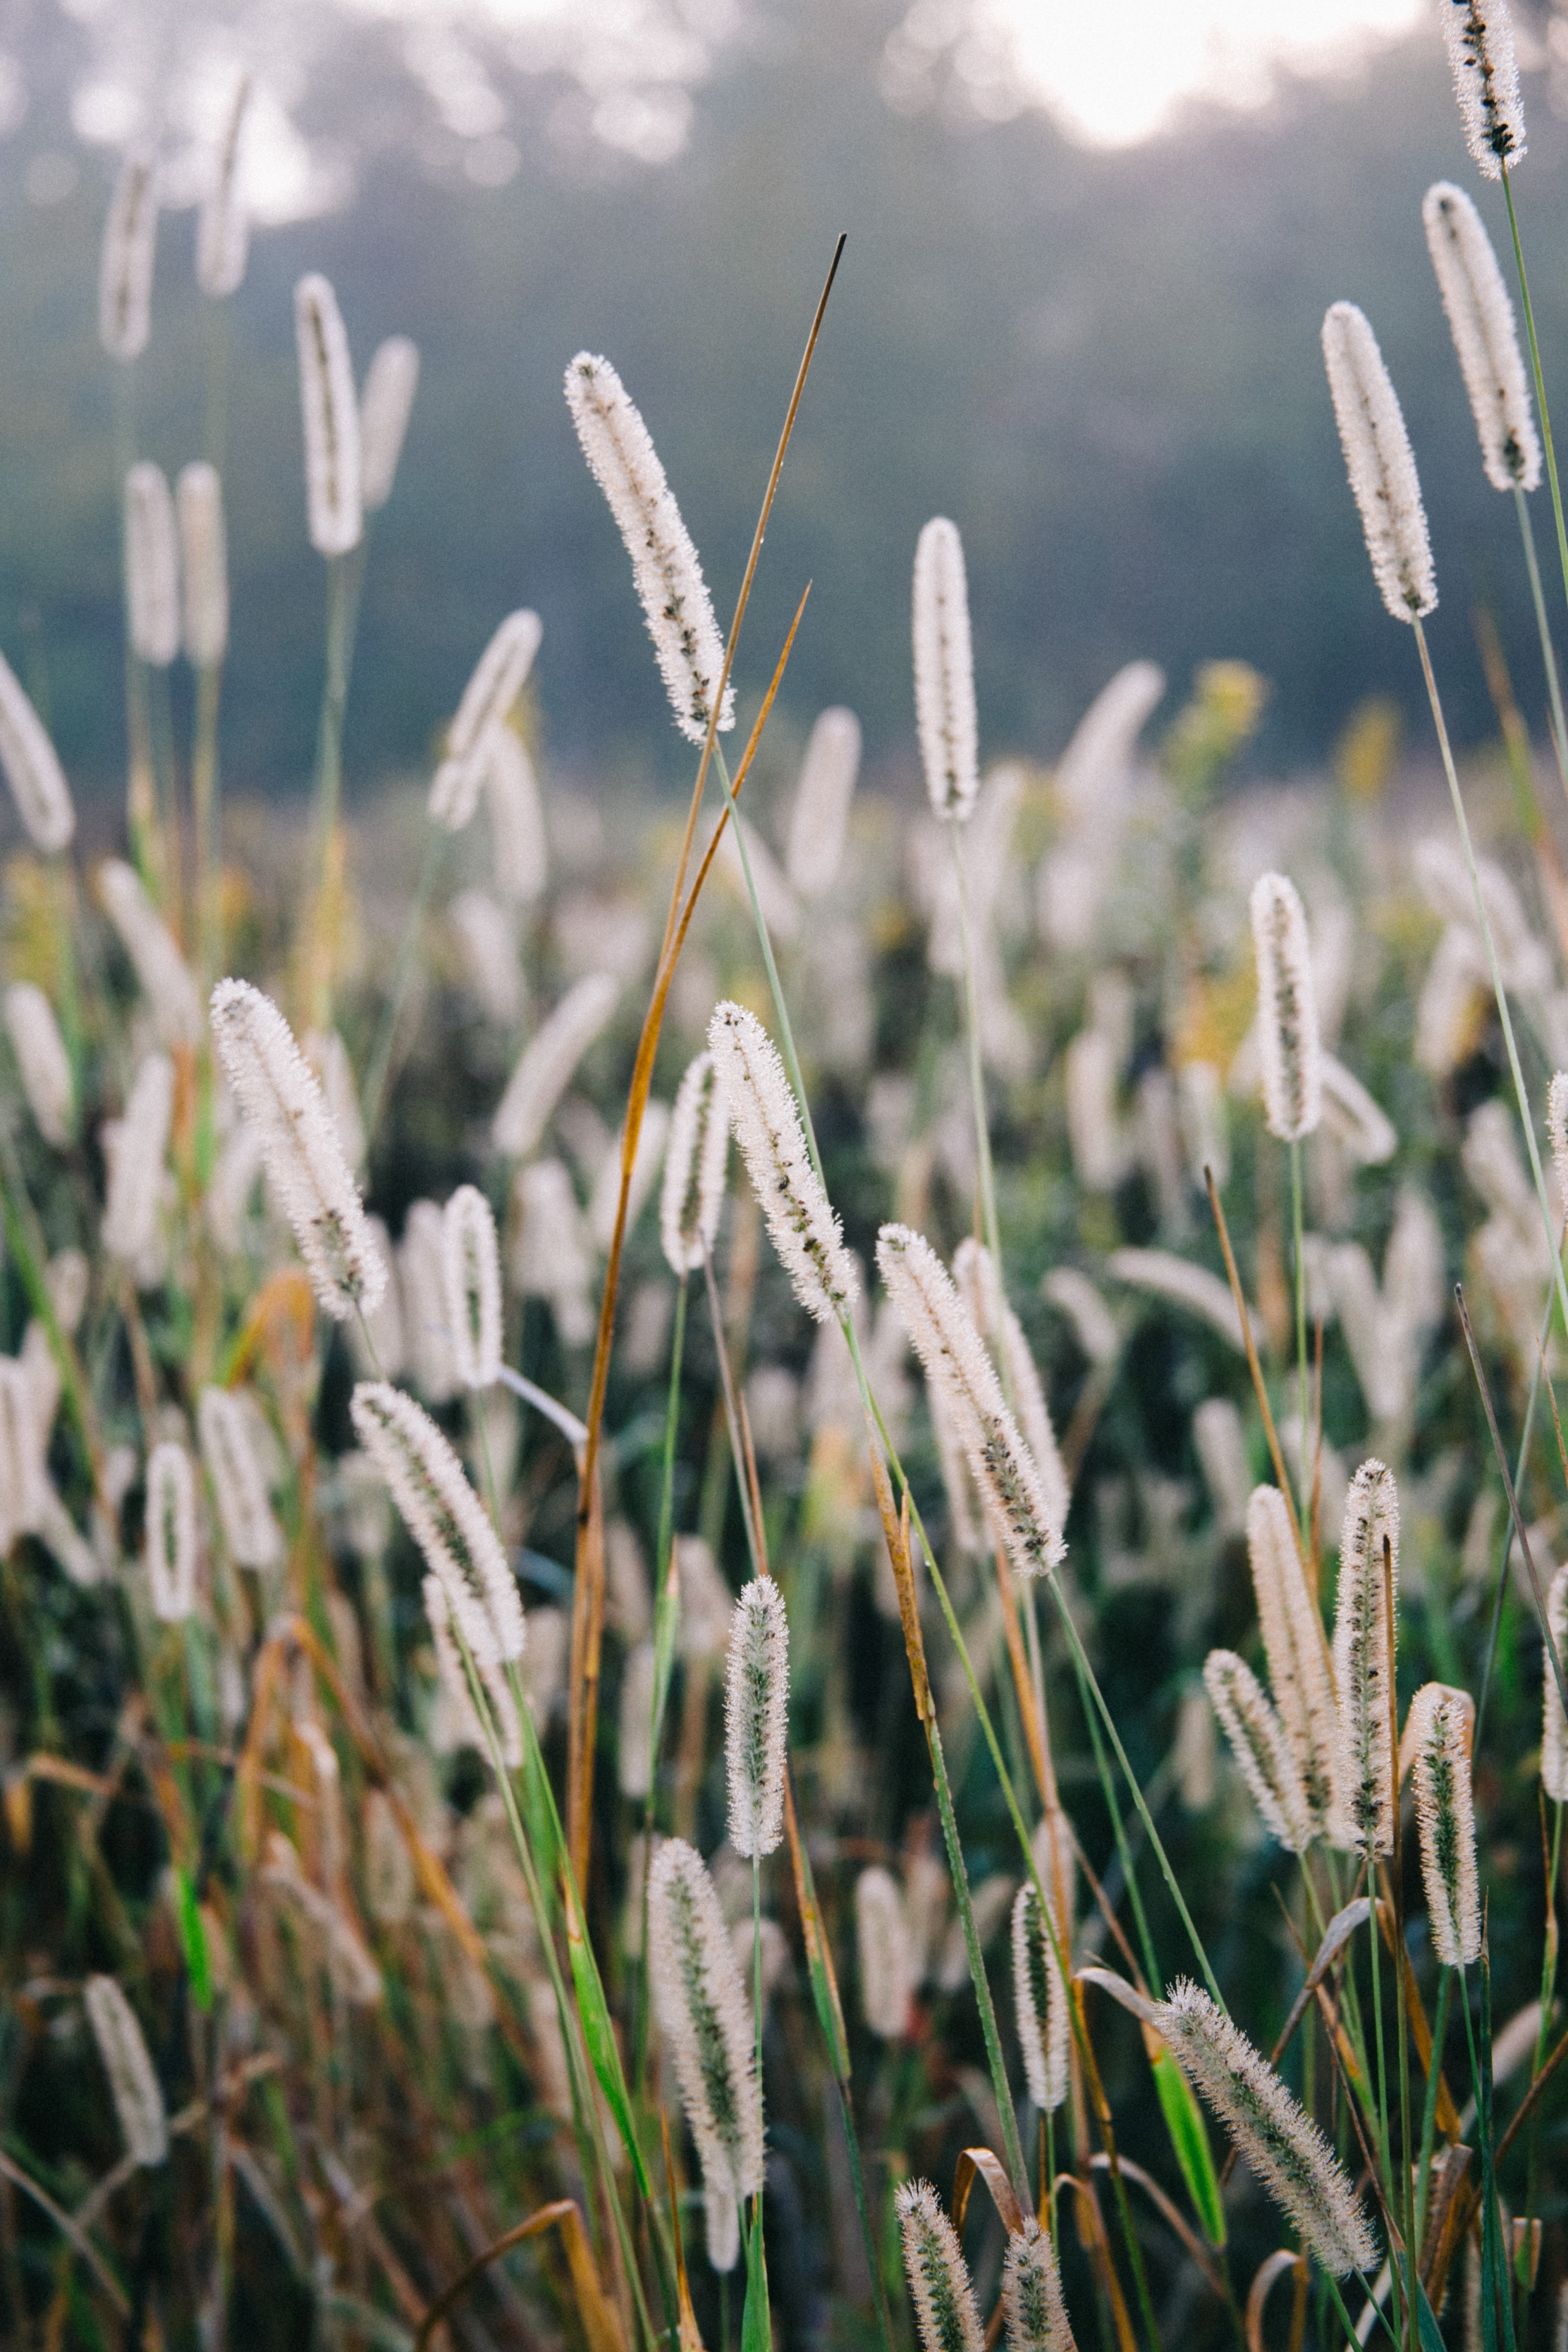 A close-up of white reeds in the meadow